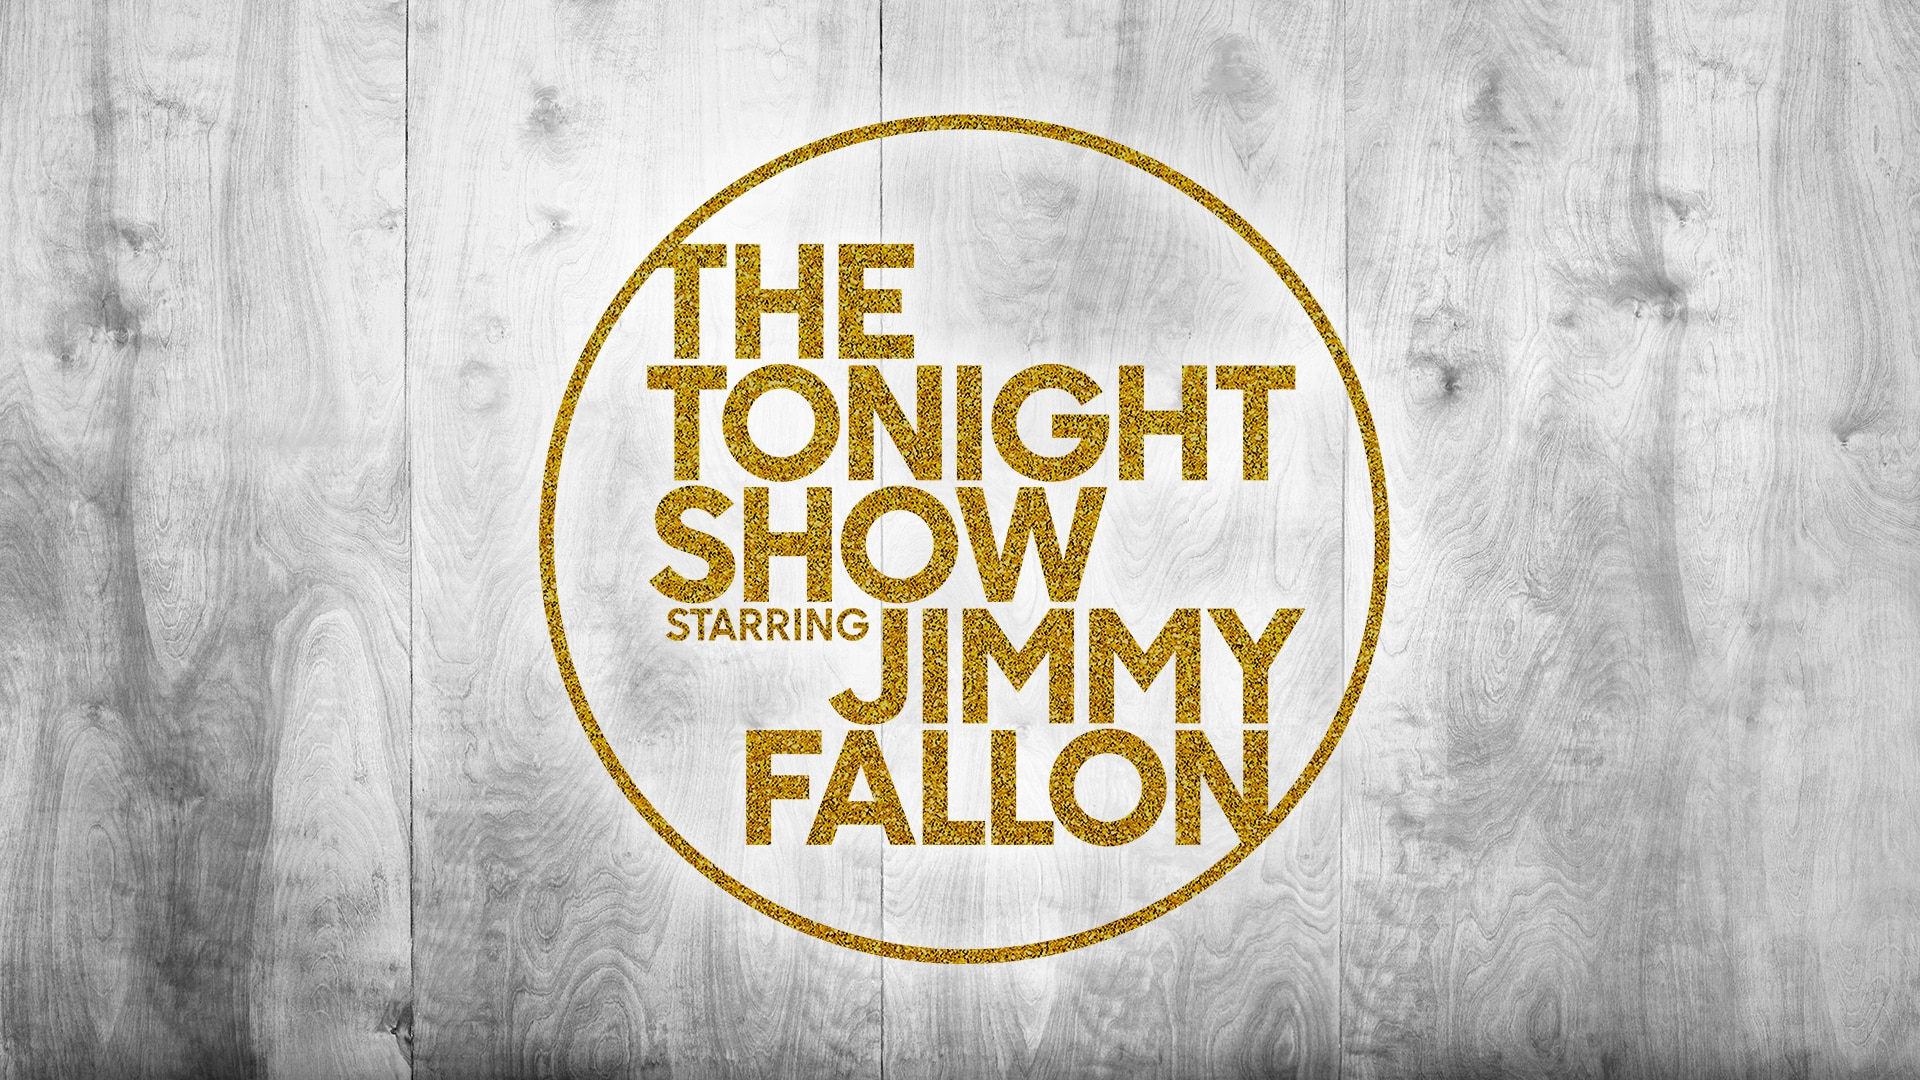 The Tonight Show Starring Jimmy Fallon Nbc Com